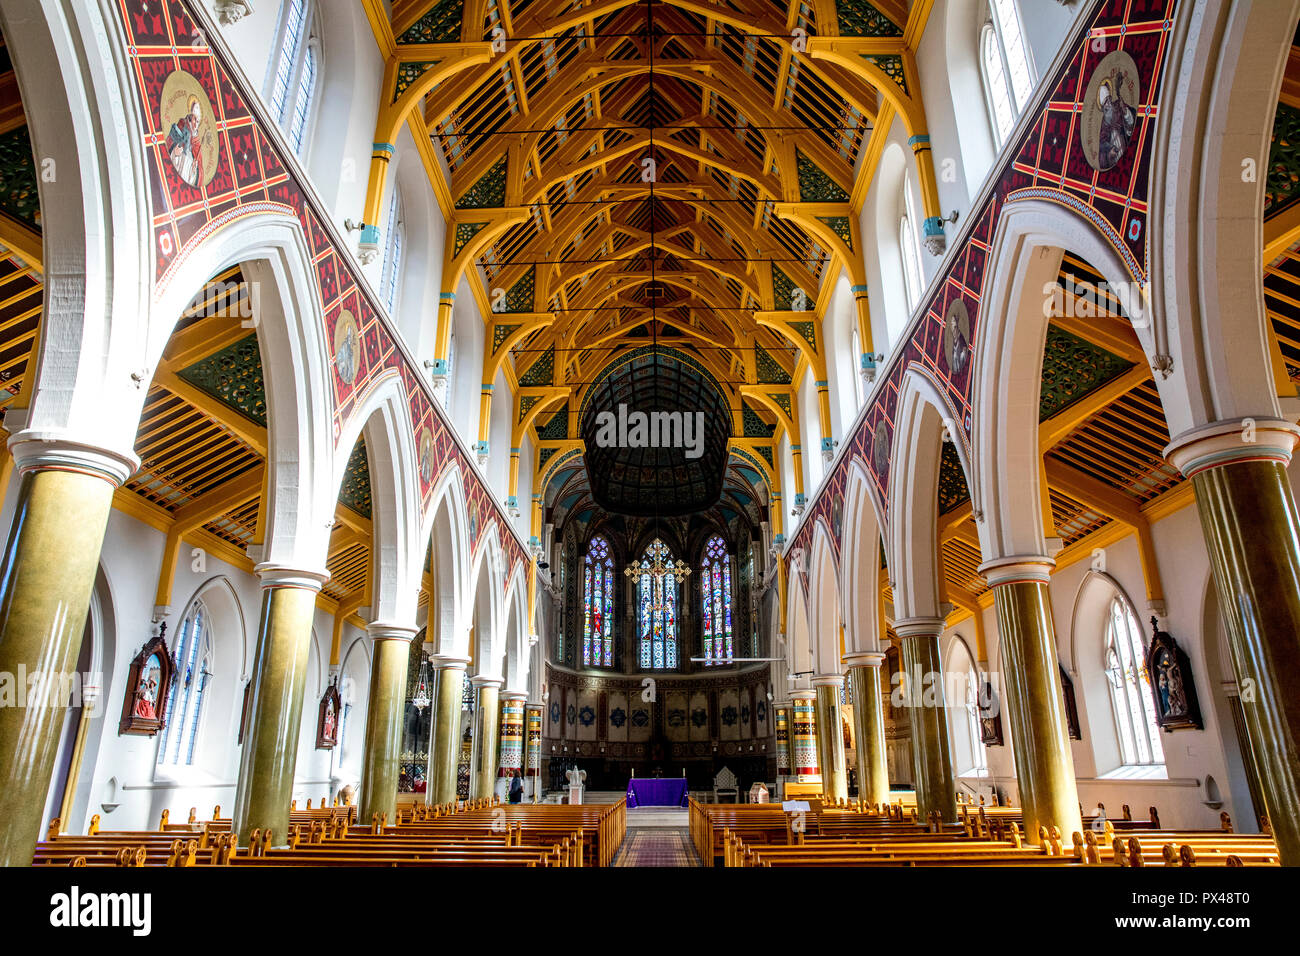 St Peter's catholic cathedral, Belfast, Northern Ireland. Nave. Ulster, U.K. - Stock Image